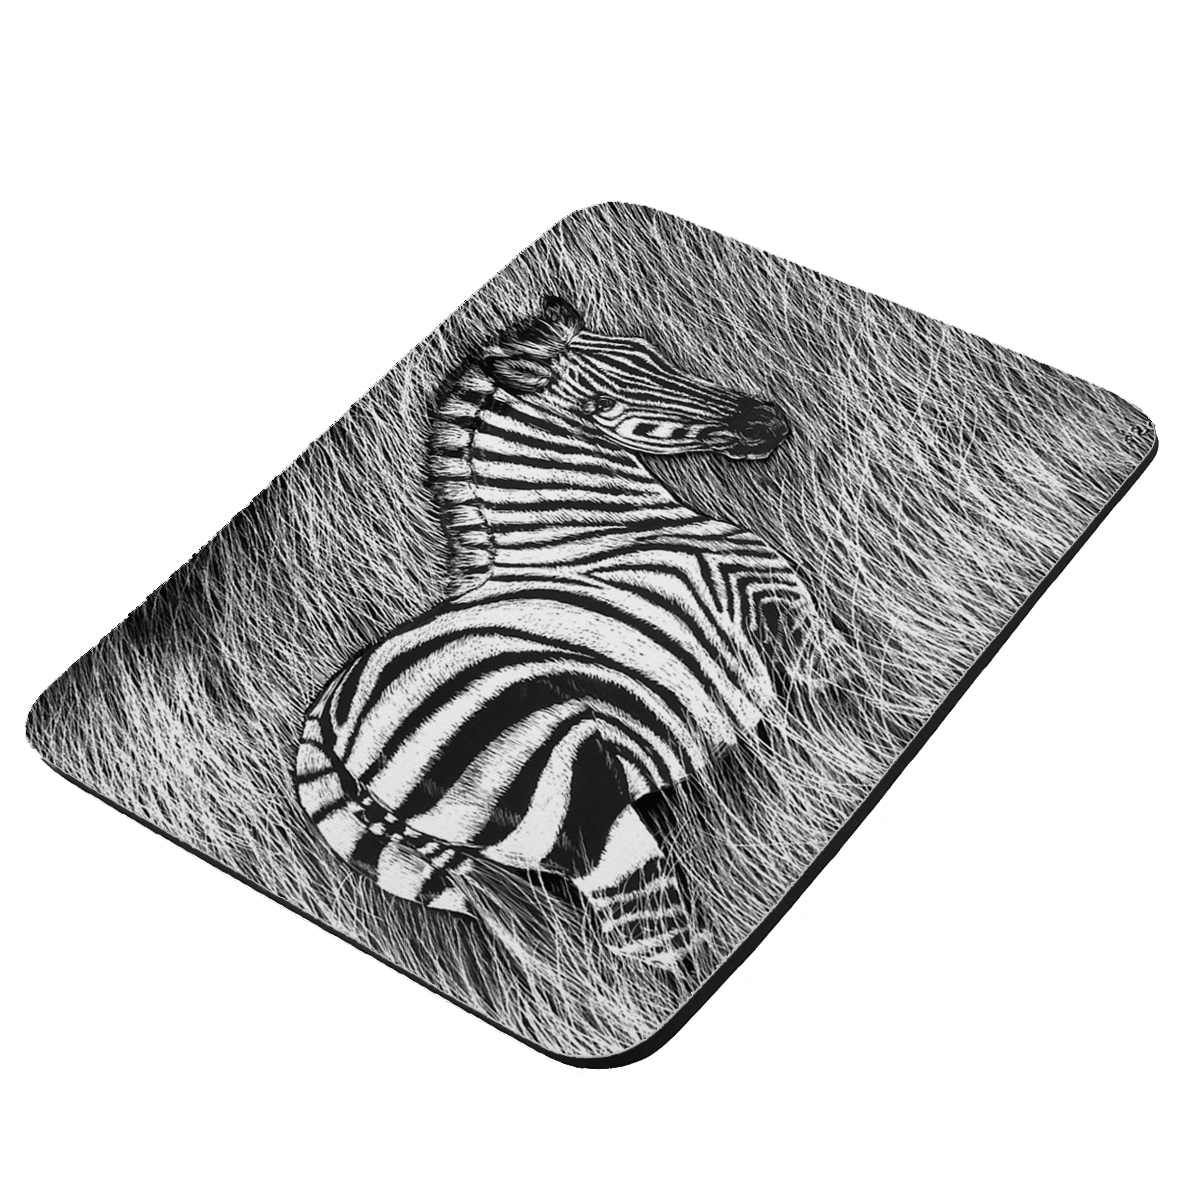 Zebra in Tall Grass Art by Denise Every - KuzmarK Mousepad / Hot Pad / Trivet